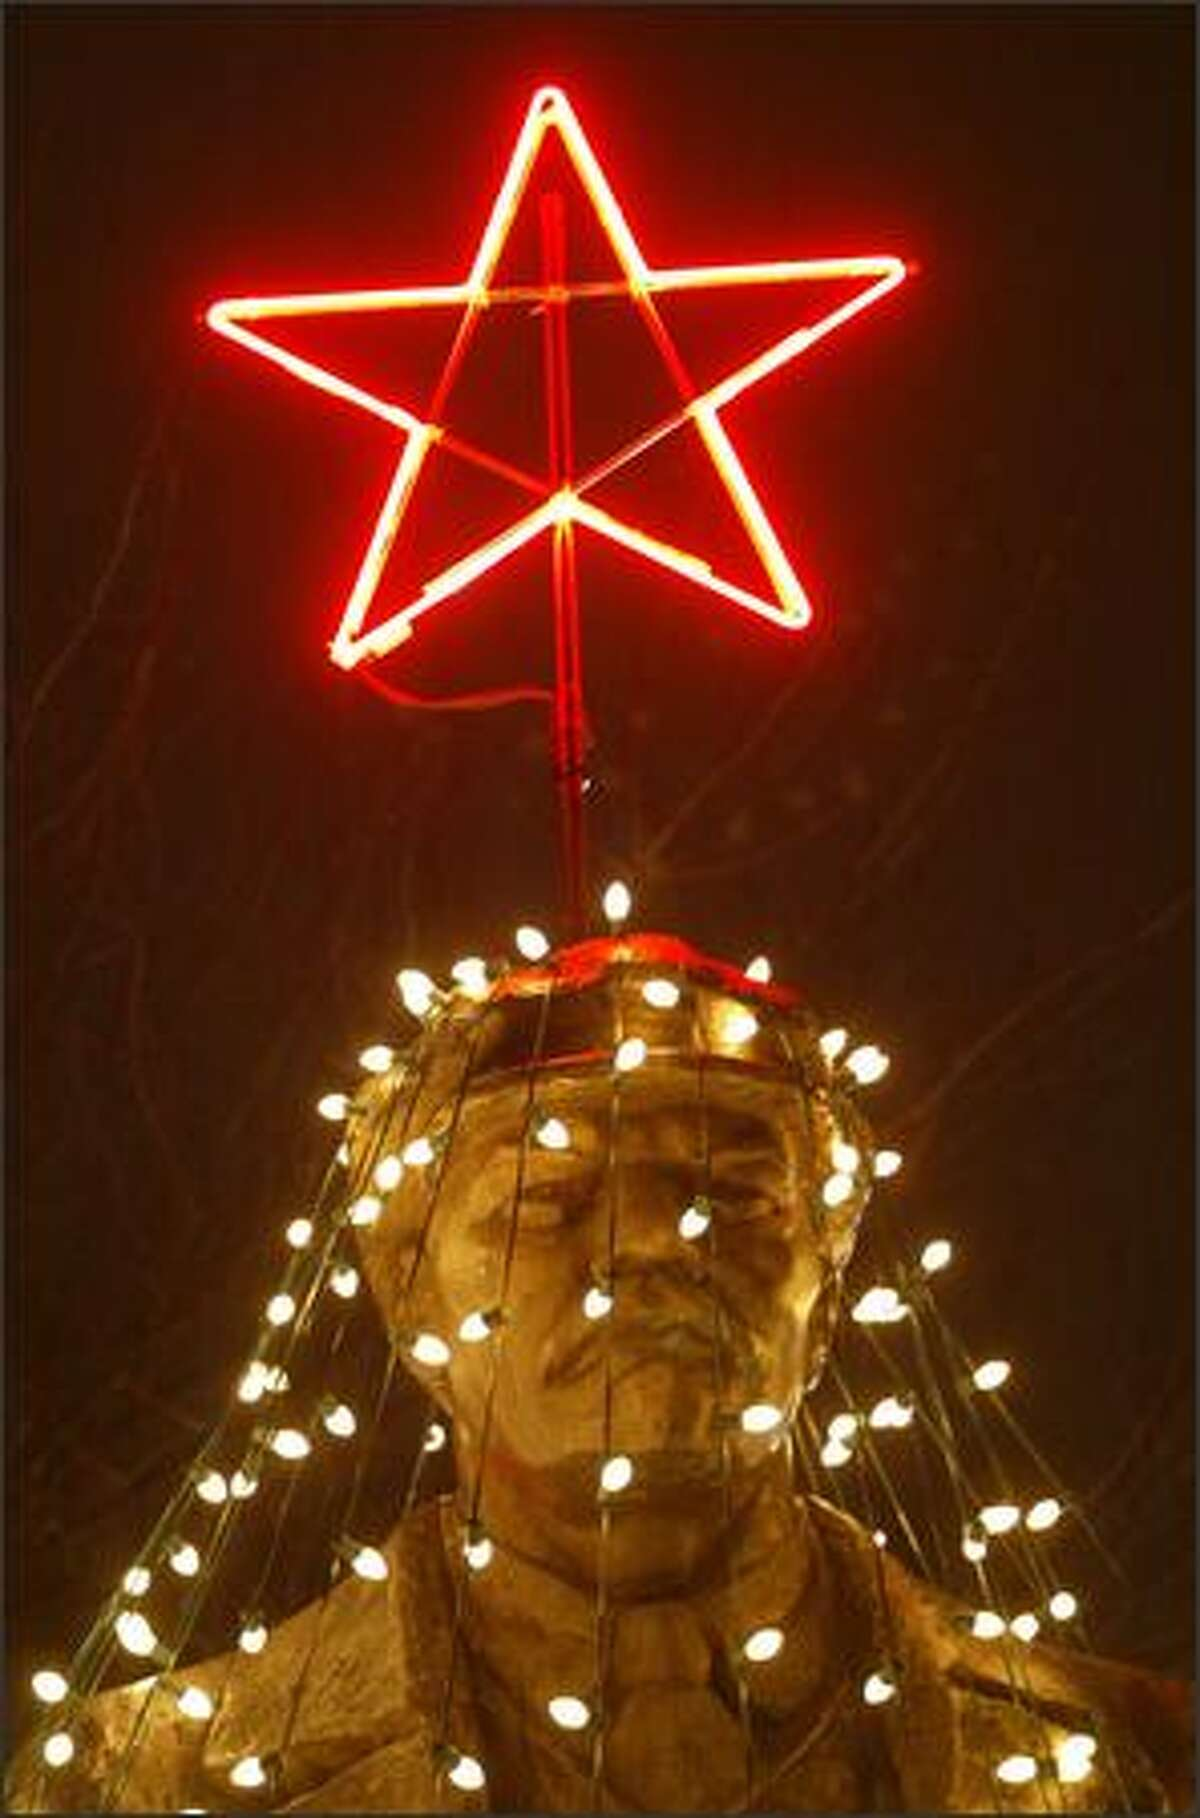 Folks in Seattle's Fremont neighborhood gathered for the first-ever holiday lighting ceremony at a statue of Vladimir Ilyich Lenin shipped from the former Soviet Union. Strings of light created a Christmas tree around the statue, complete with a shining red star on his hat.